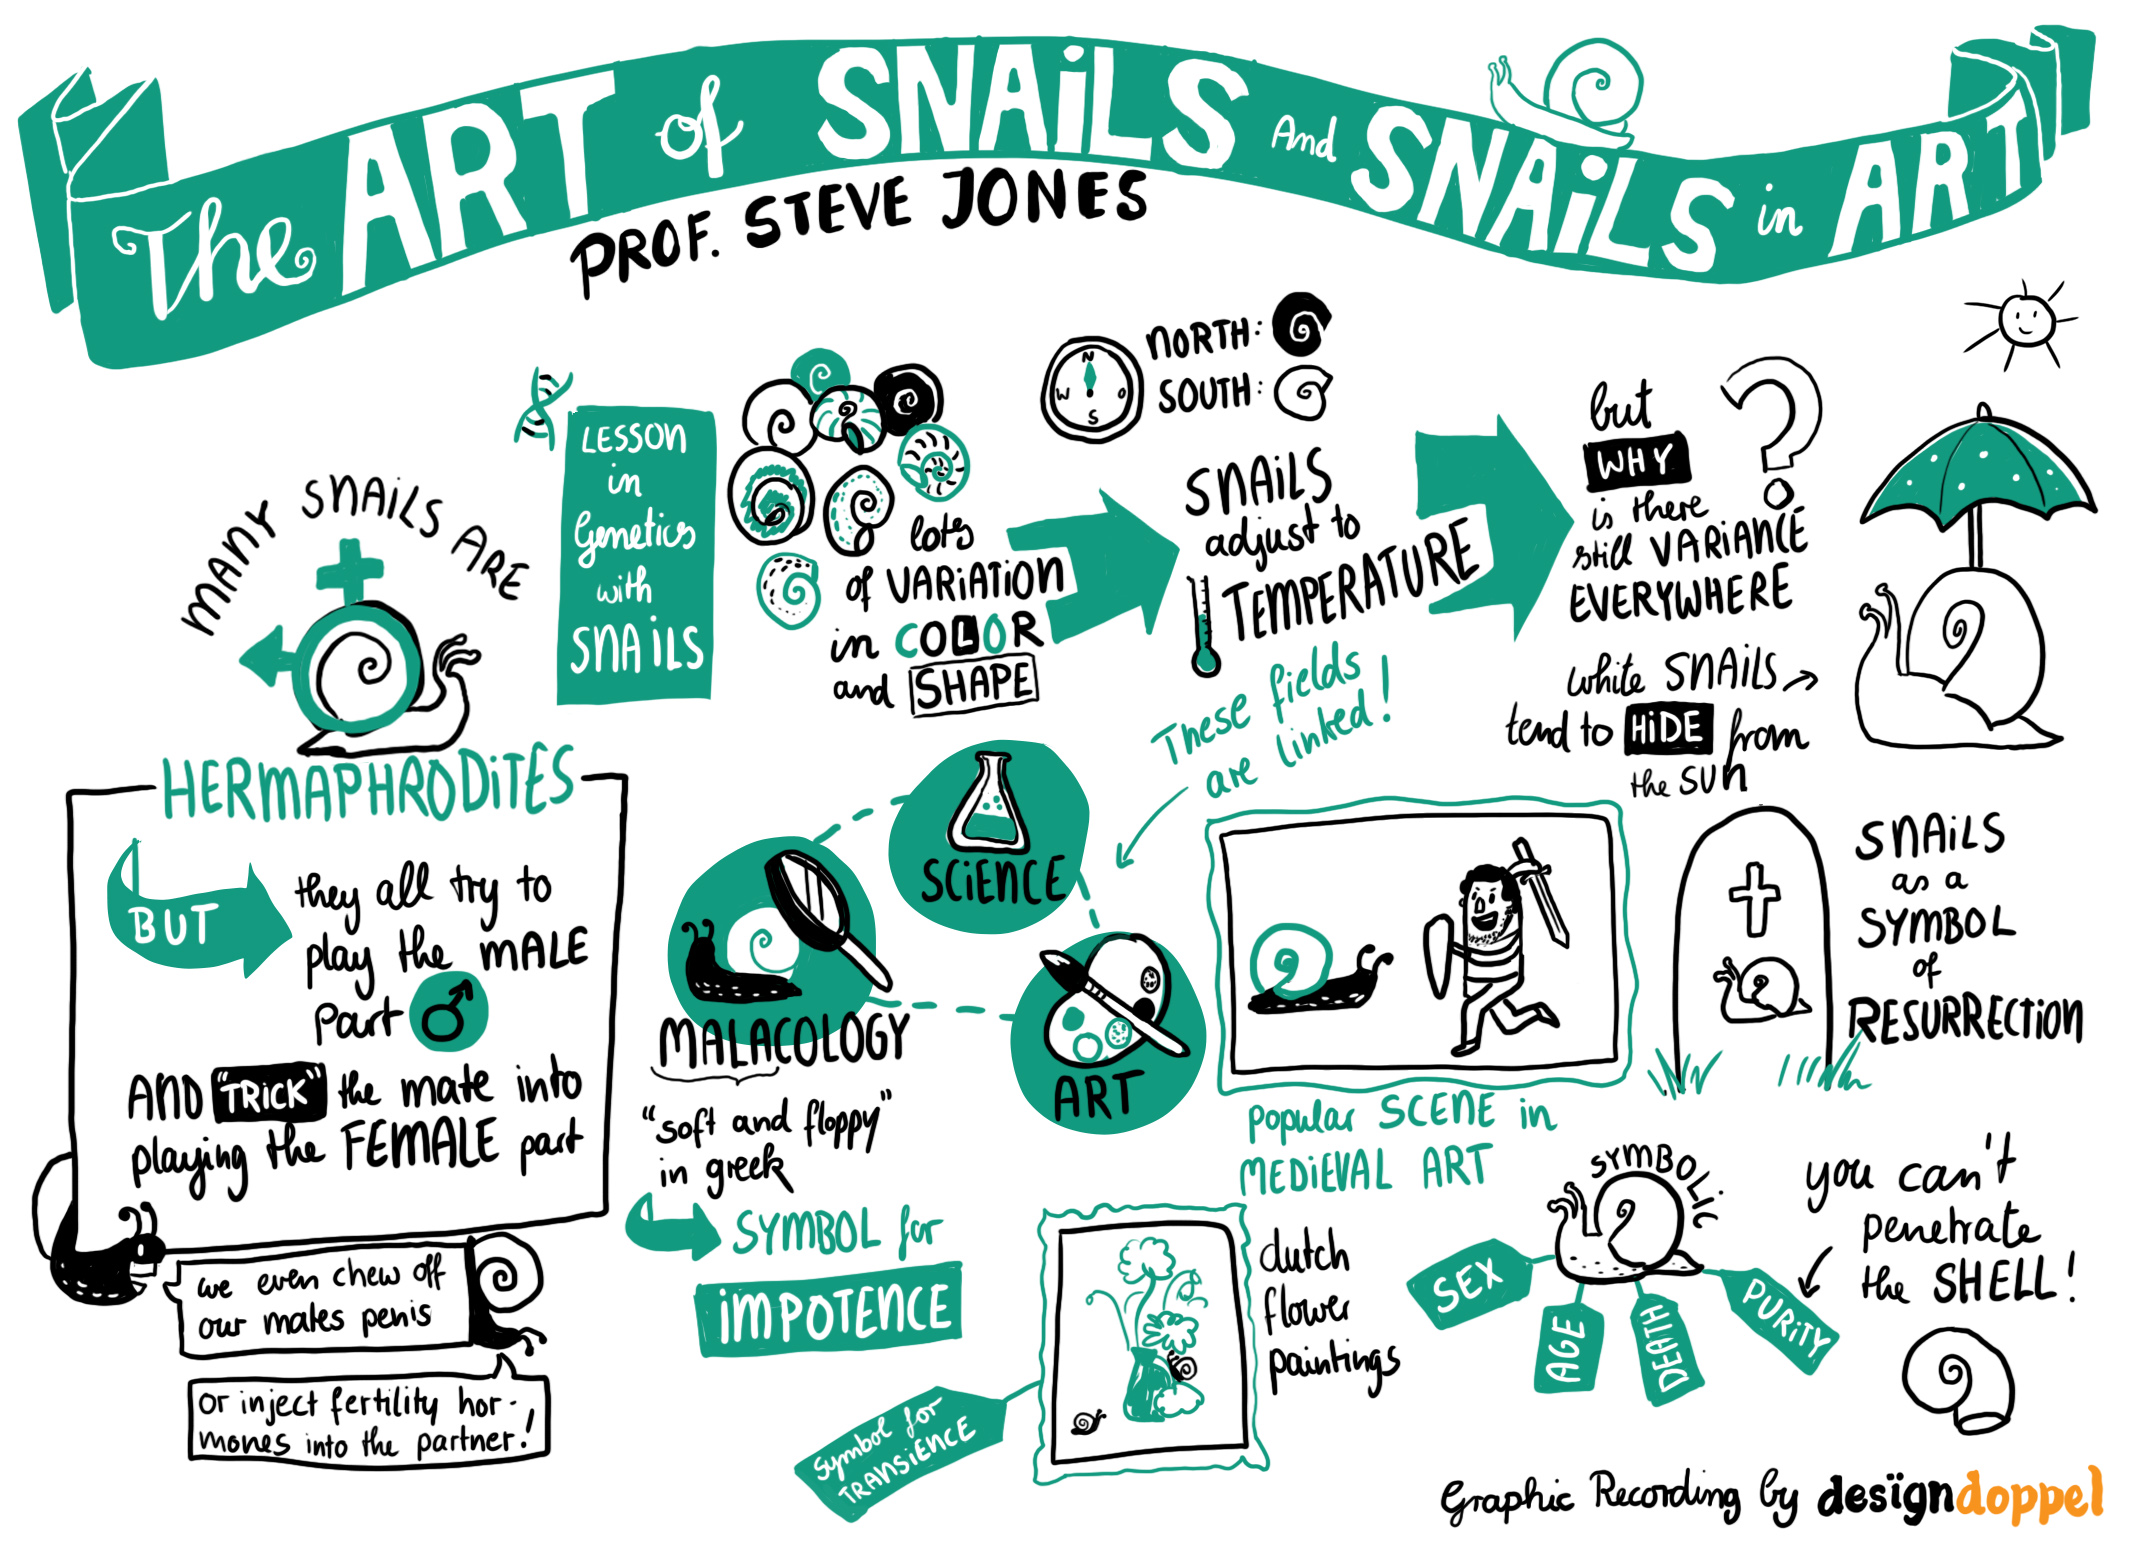 The Art of Snails and Snails in Art